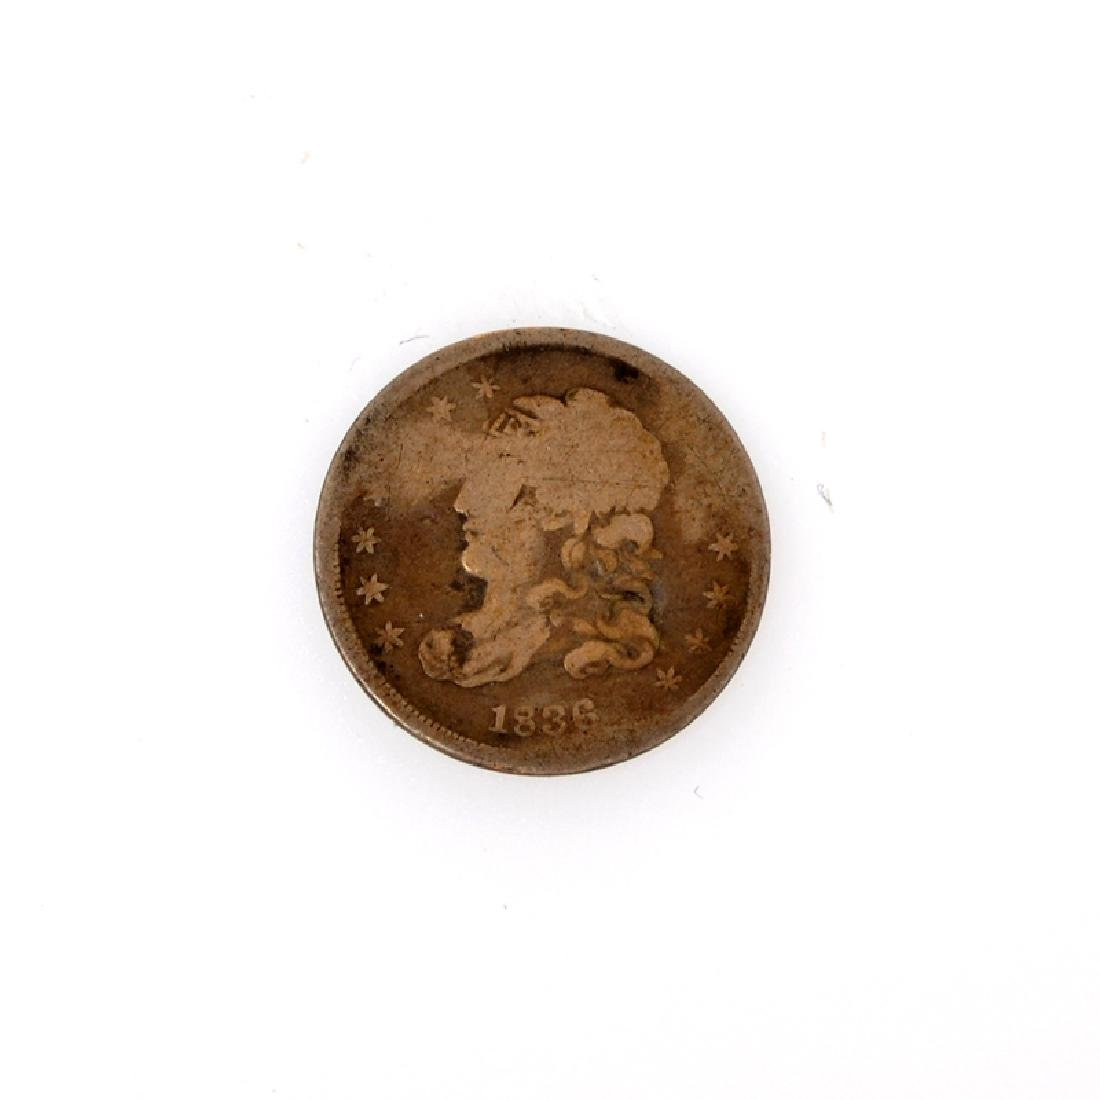 1836 Capped Bust Half Dime Coin